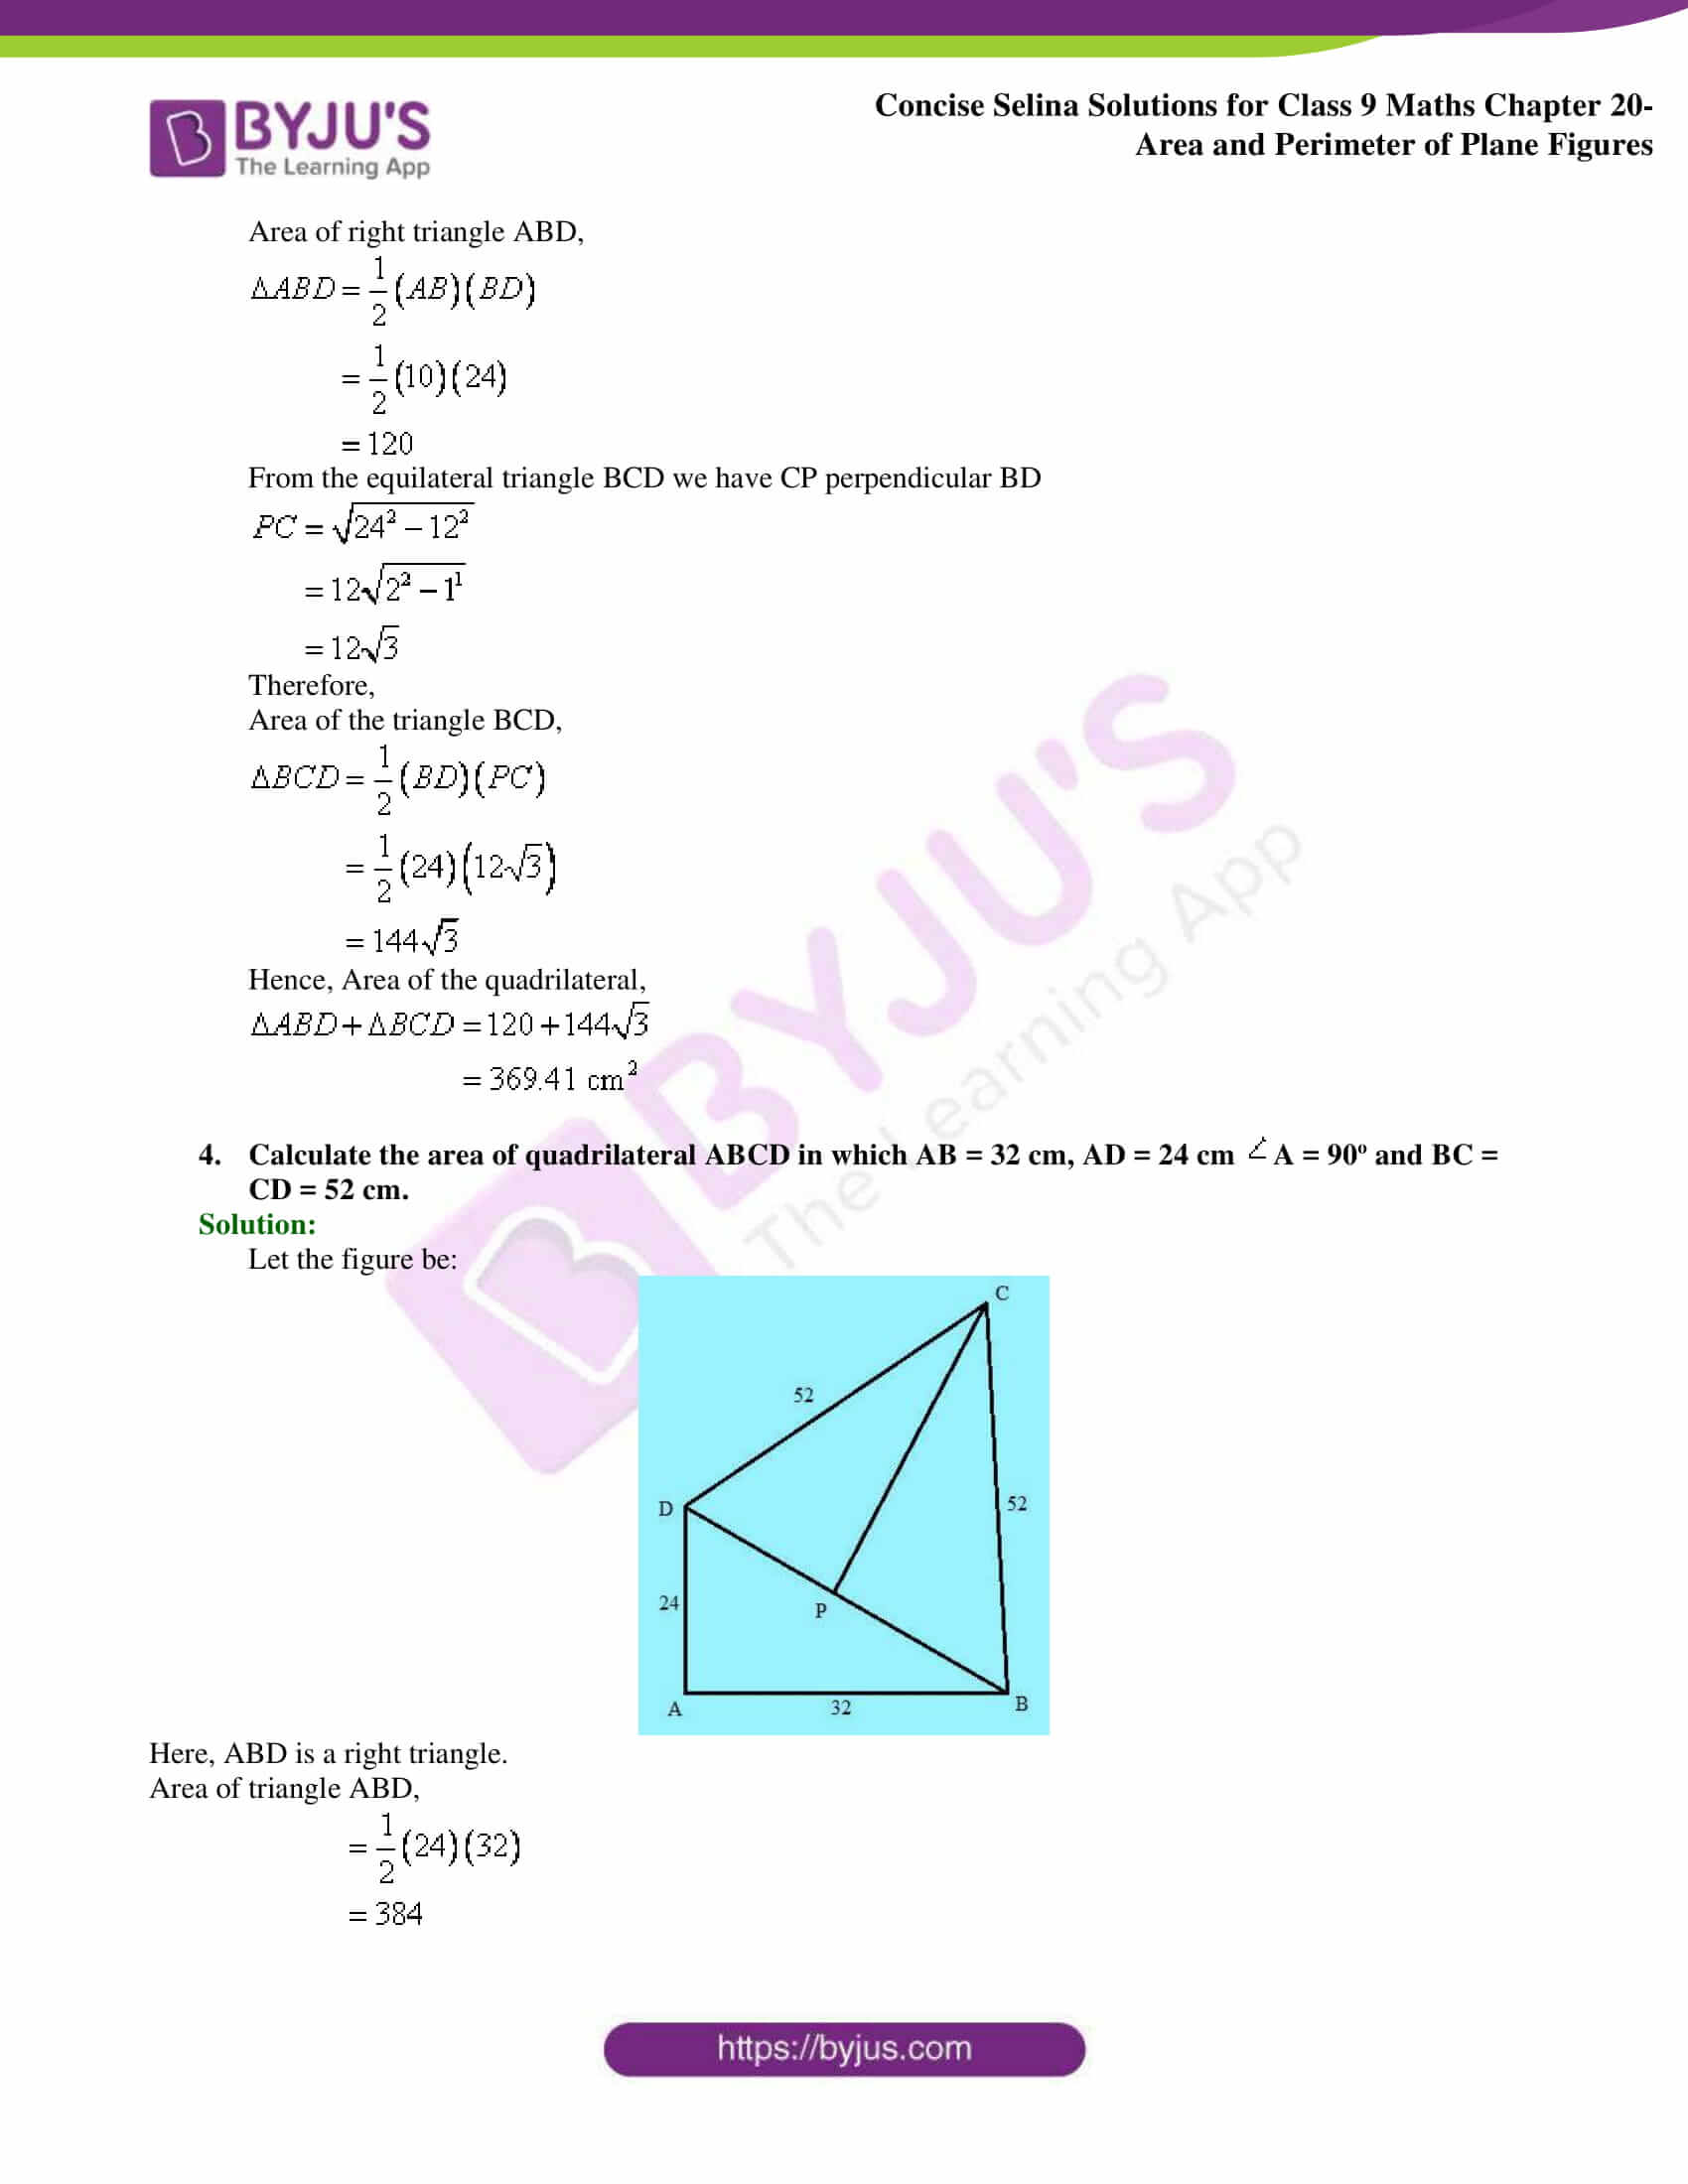 Concise Selina Solutions Class 9 Maths Chapter 20 Area and Perimeter of Plane part 12